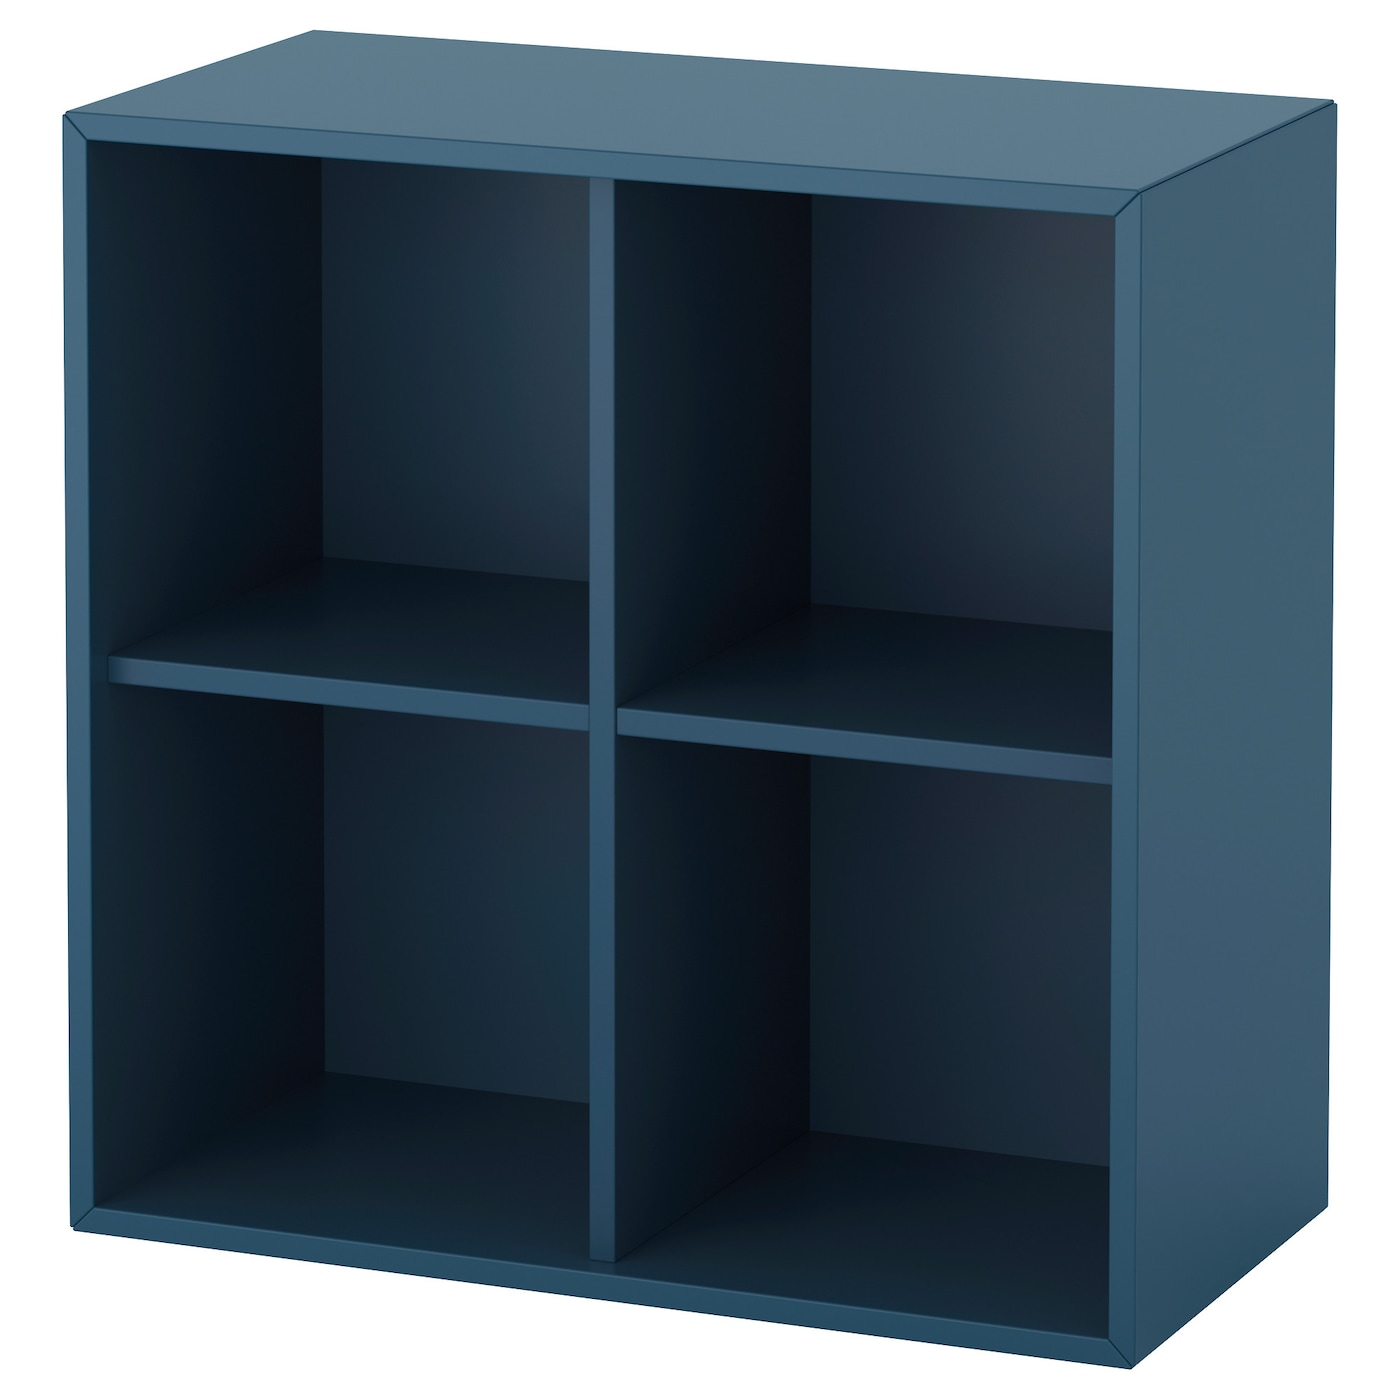 eket cabinet with 4 compartments dark blue 70 x 35 x 70 cm ikea. Black Bedroom Furniture Sets. Home Design Ideas